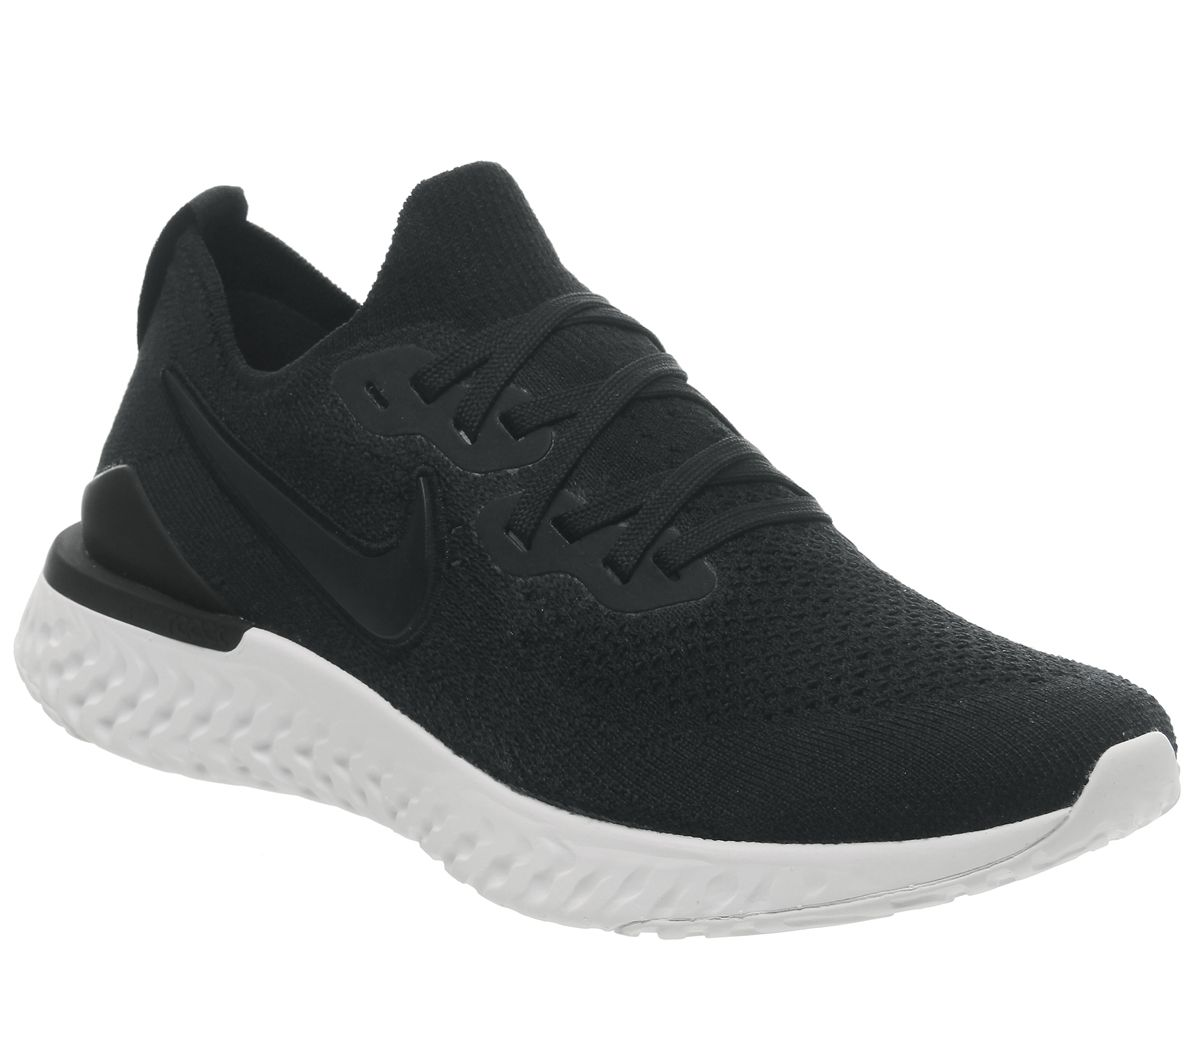 719ab0859d528 Nike Epic React Flyknit Trainers Black White - Hers trainers